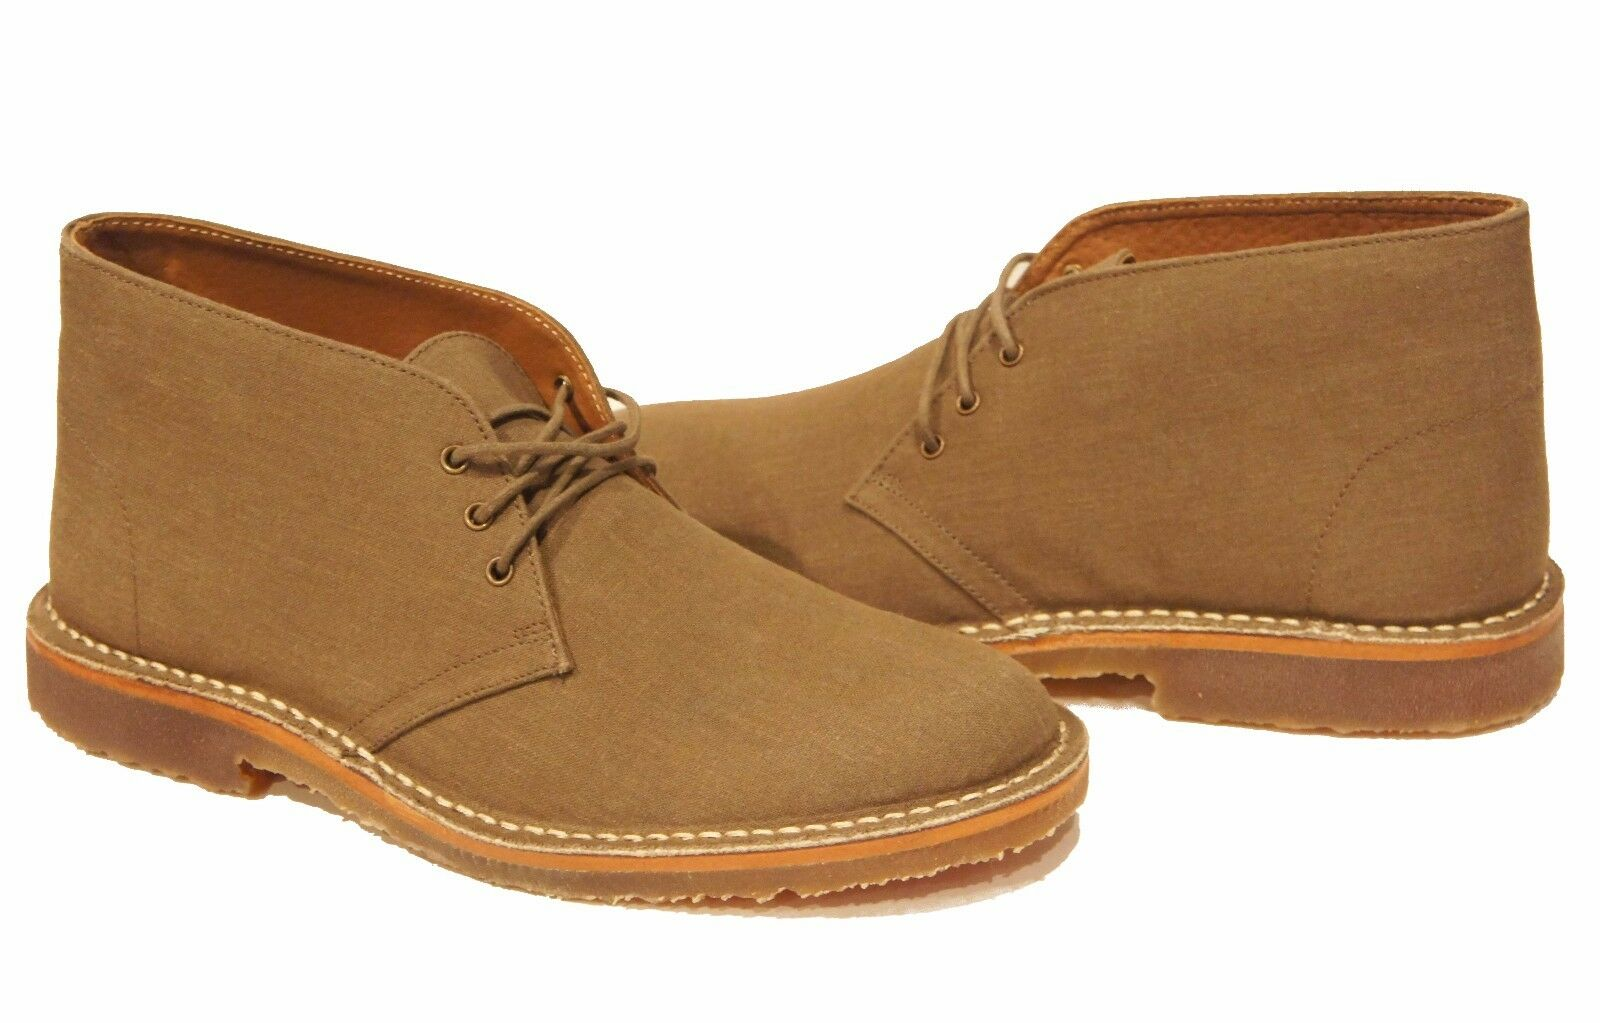 Lands' End Sustainable Gum Sole Lace Up Chukka Ankle Boot 8.5